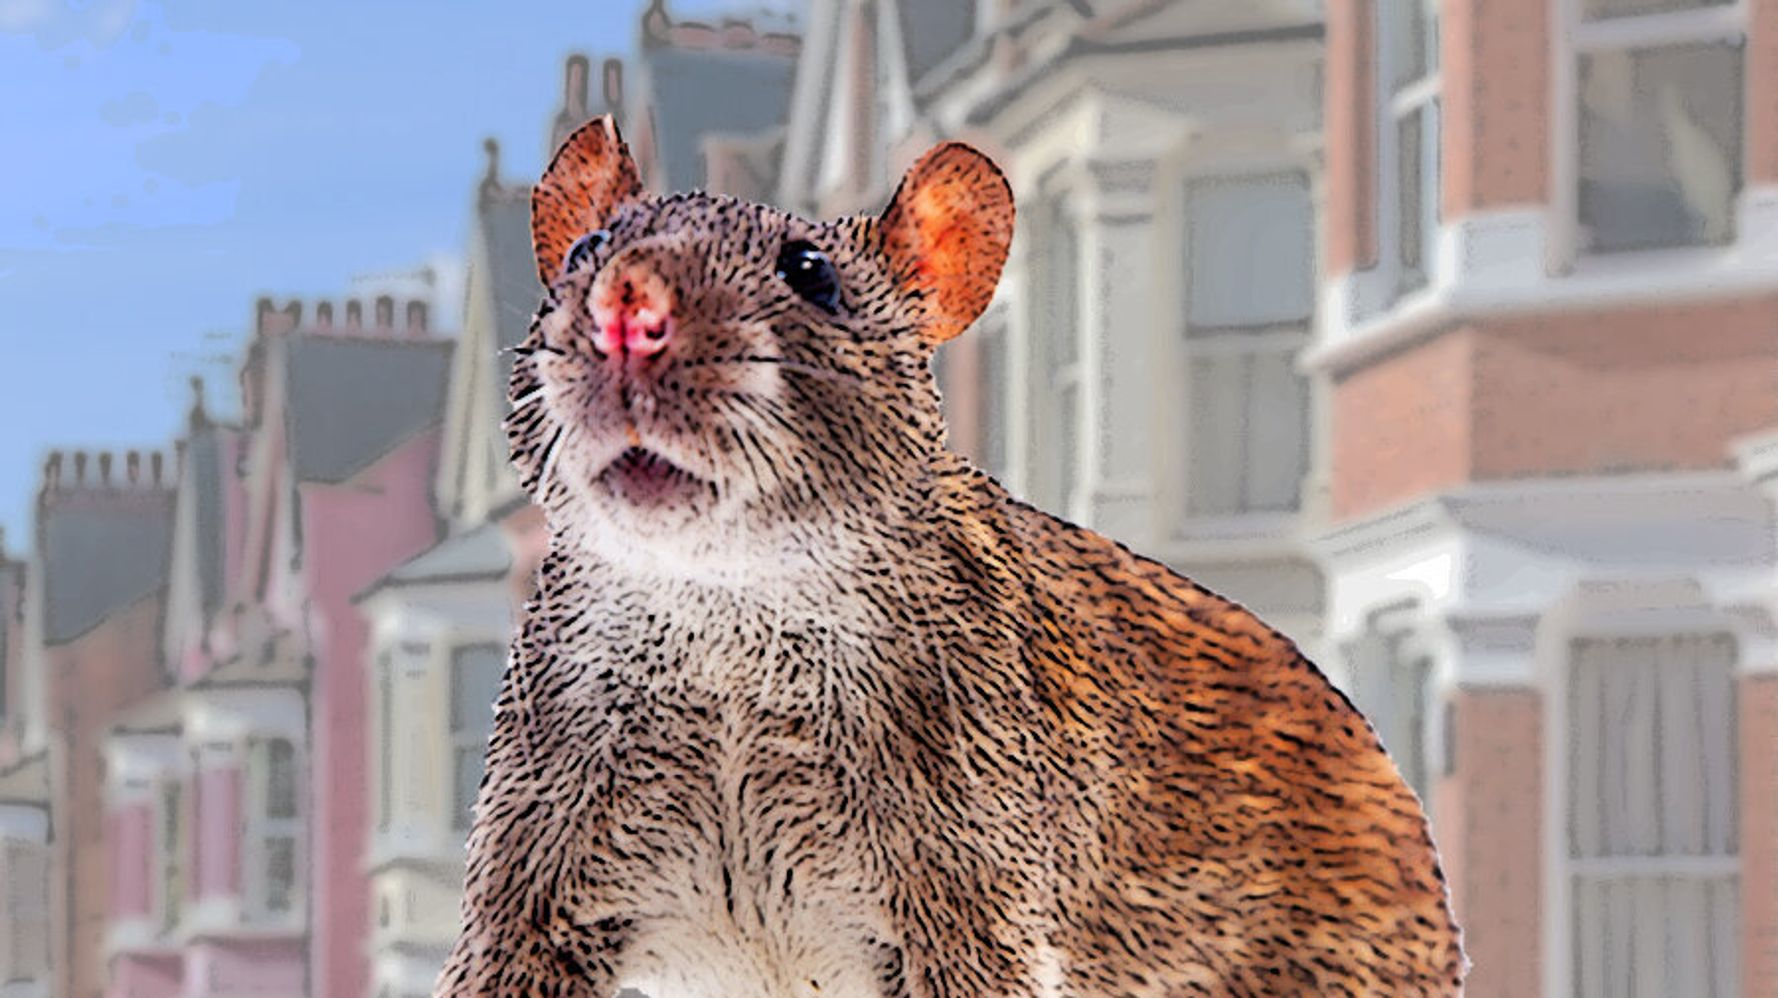 Brown Rats Are Plaguing People's Homes This Year – Here's Why